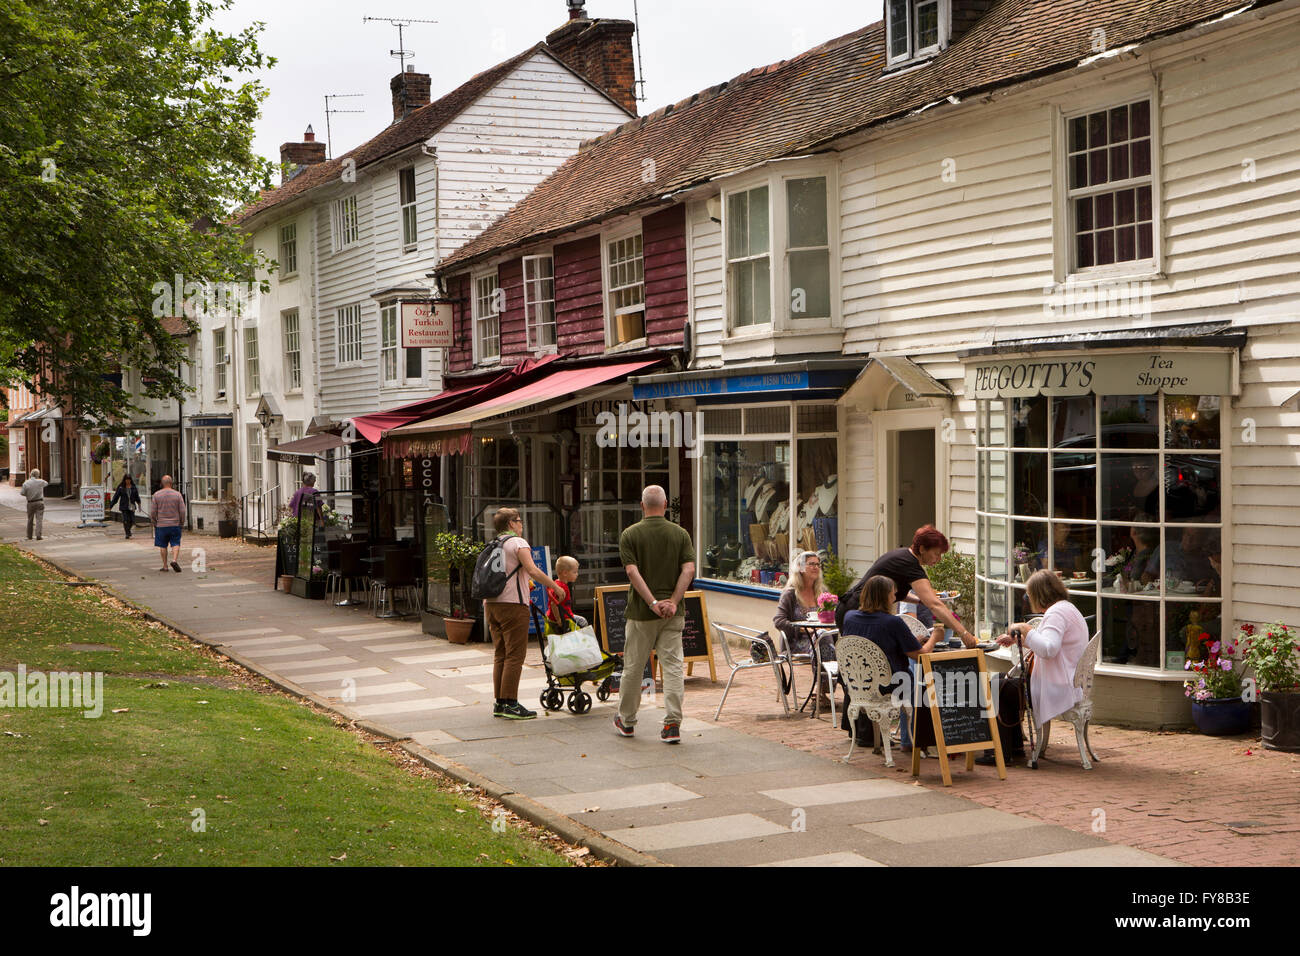 UK, Kent, Tenterden, High Street, picturesque tile hung and weatherboarded shops - Stock Image